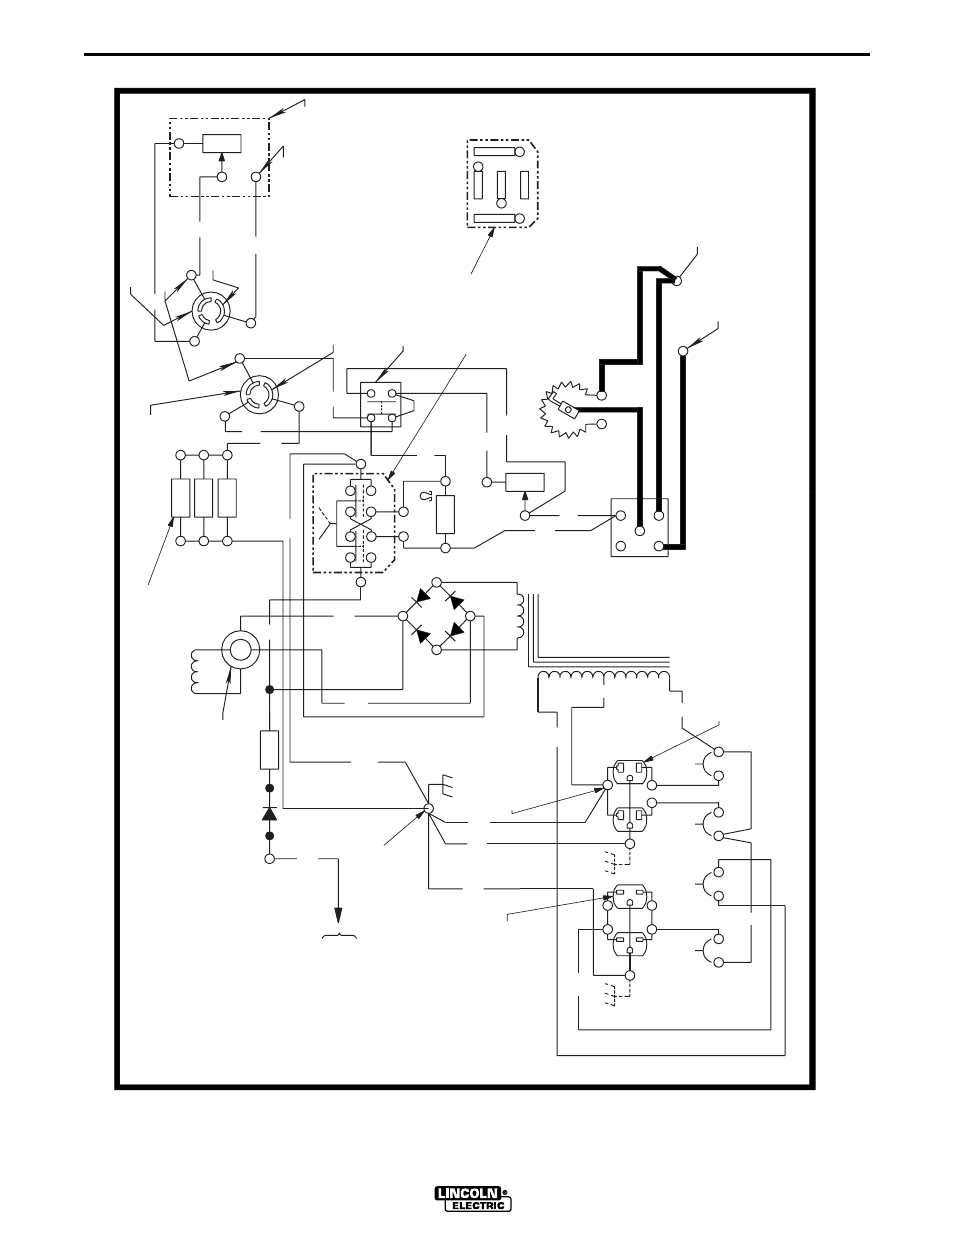 hight resolution of lincoln 225 wiring diagram wiring diagram yerlincoln electric ac 225 wiring diagram wiring diagram official lincoln